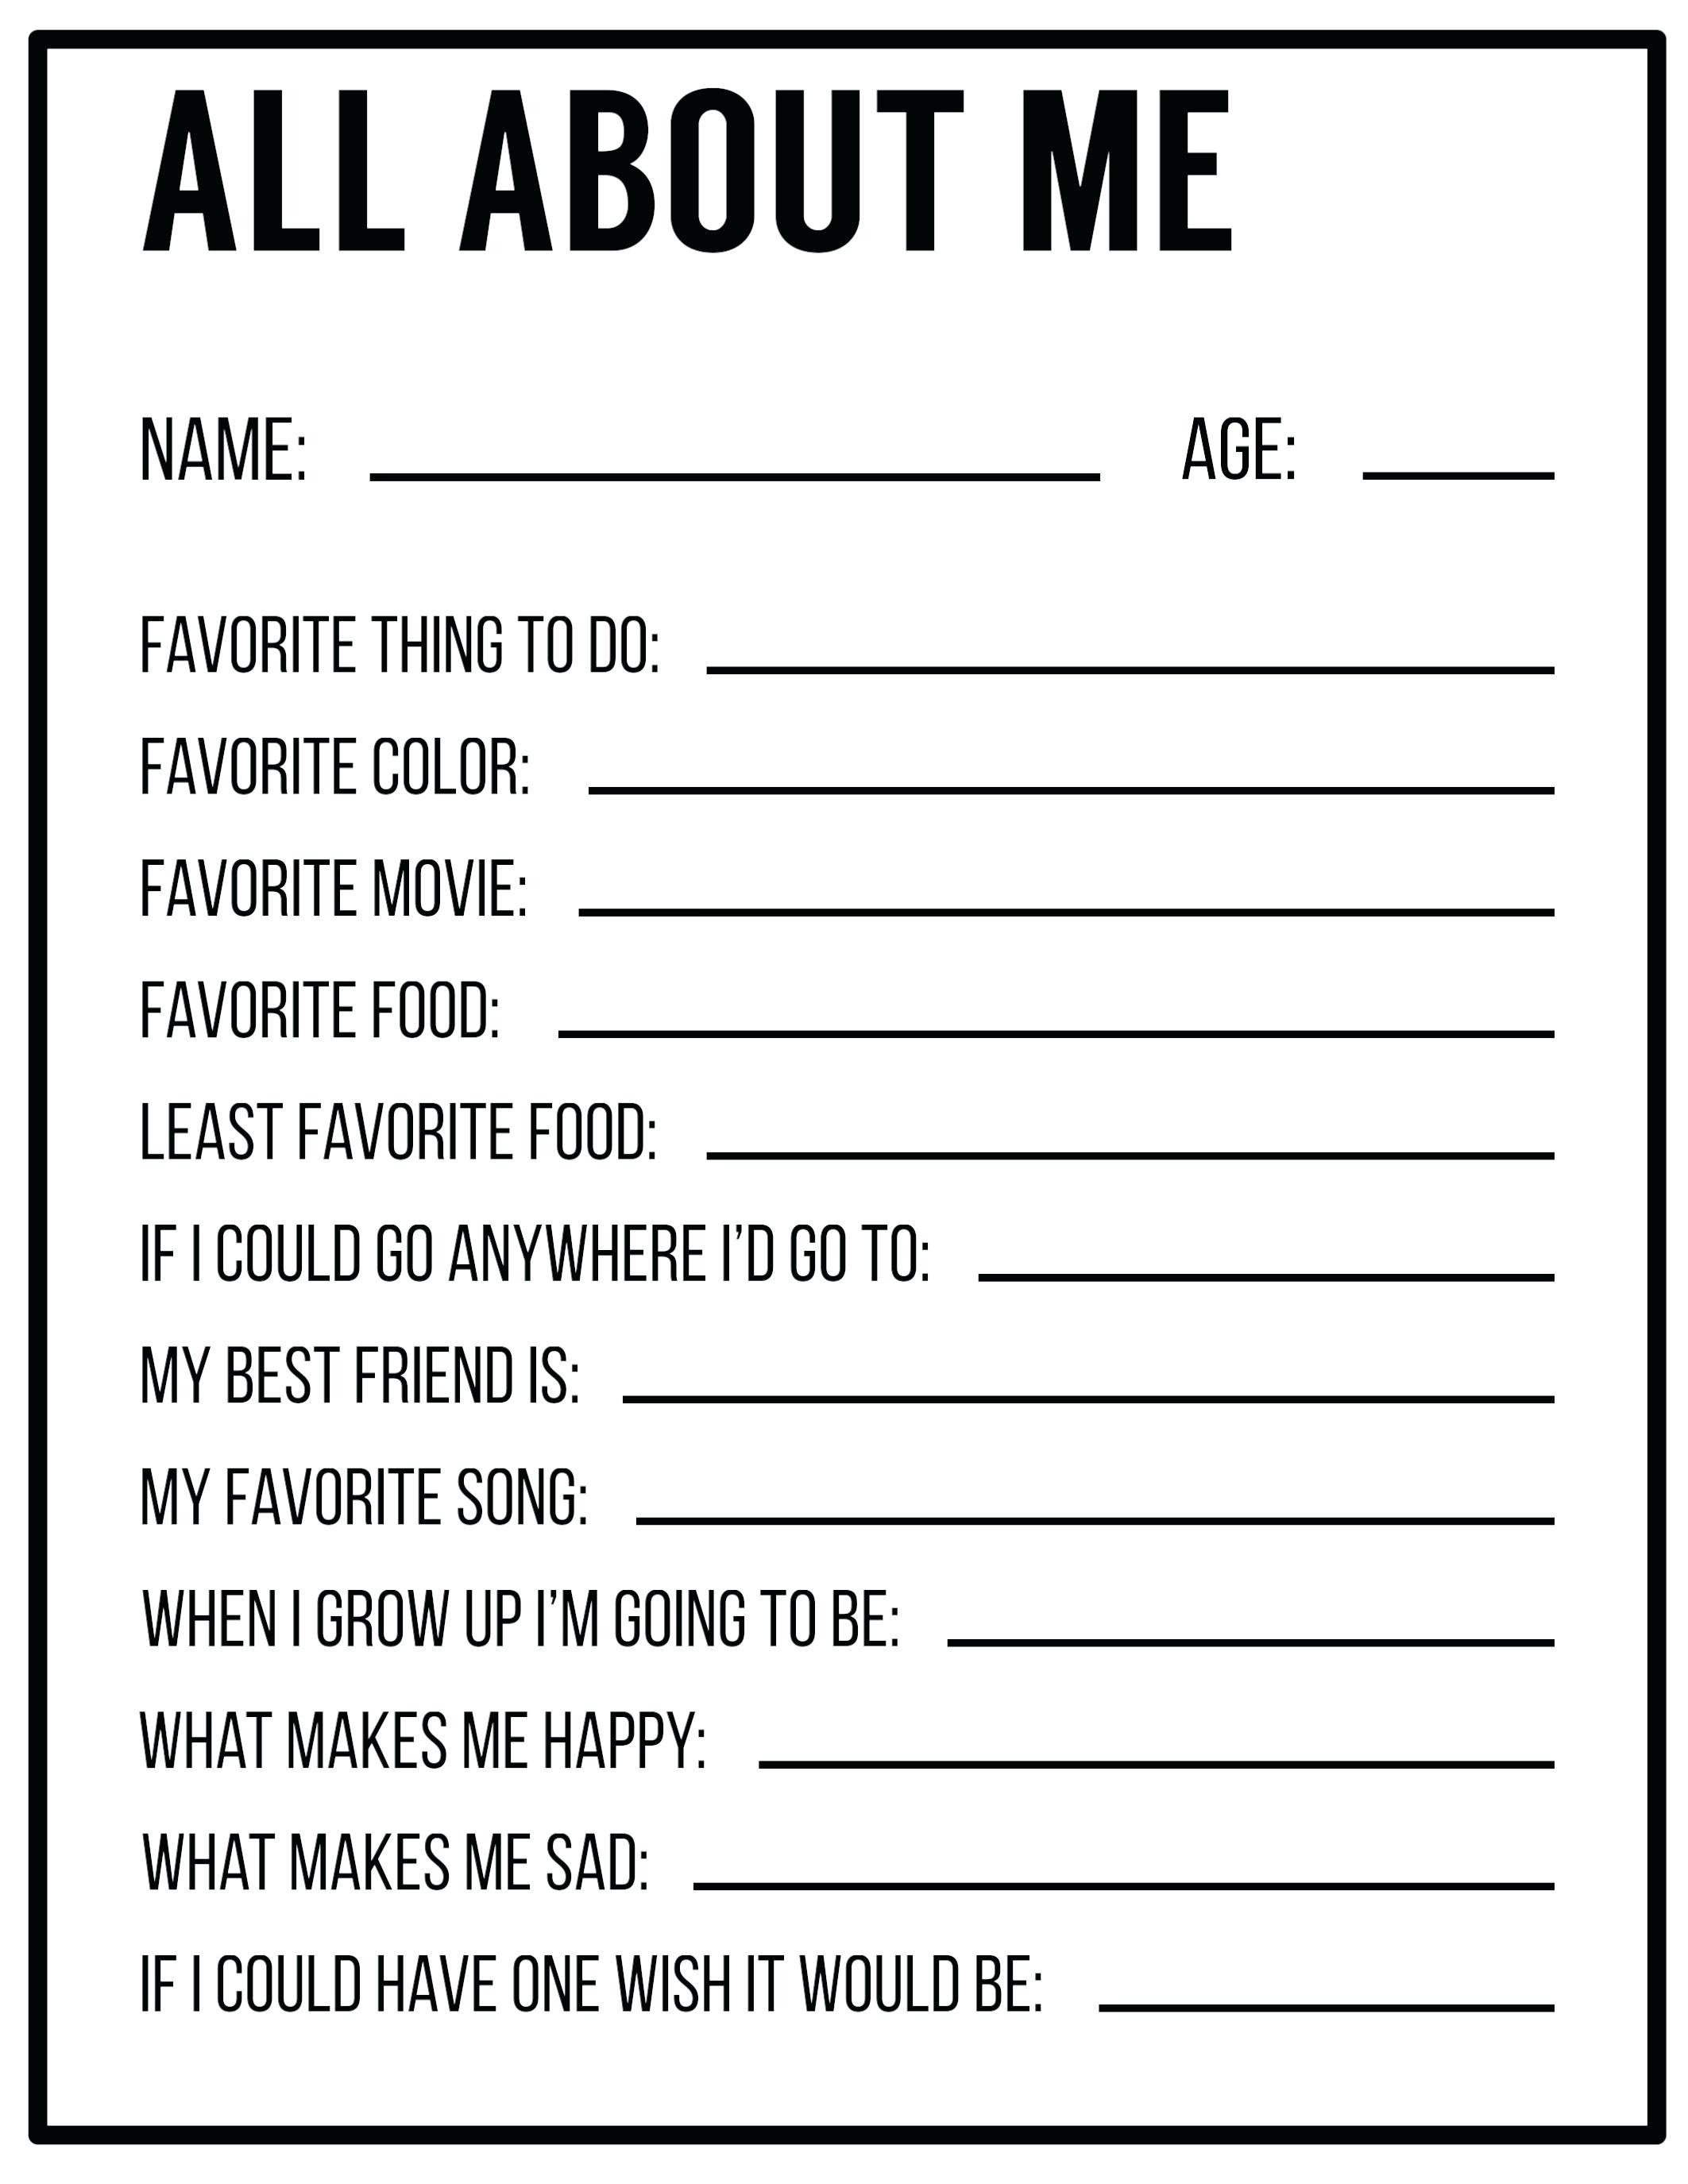 Free Printable All About Me Worksheet Free Printable All About Me - Free Printable Language Arts Worksheets For 1St Grade